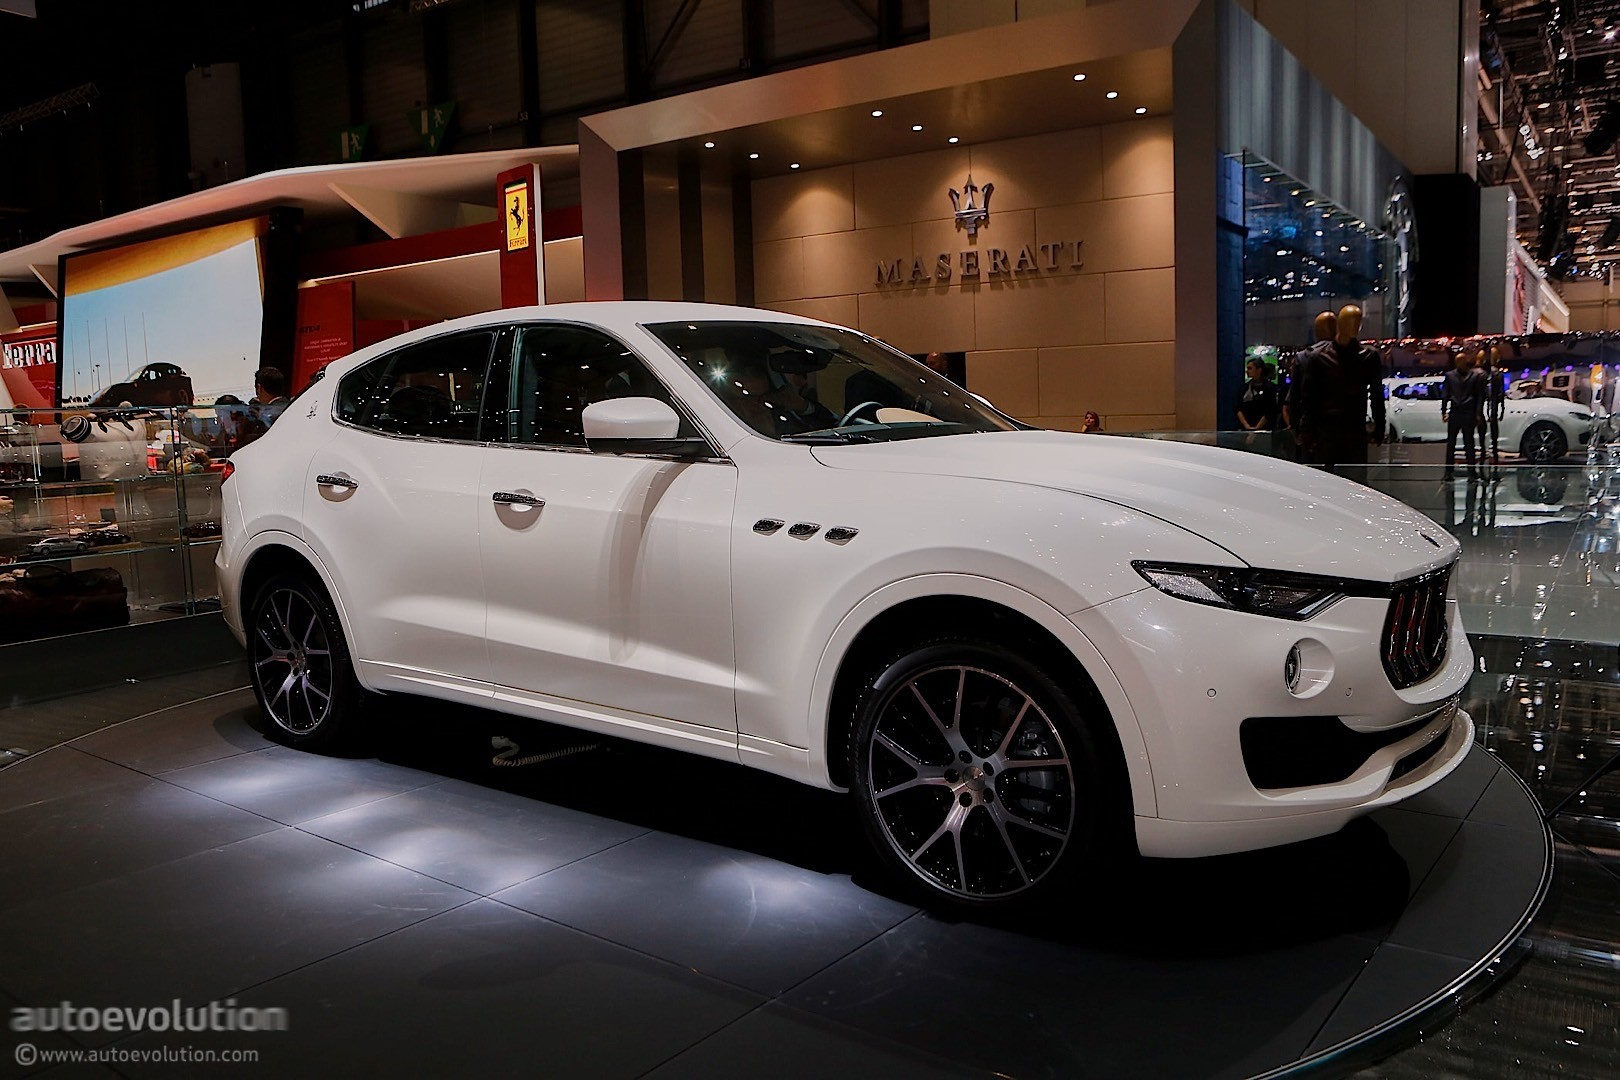 Maserati Sports Car >> Maserati Levante SUV Looks like a Ghibli on Stilts in Geneva - autoevolution